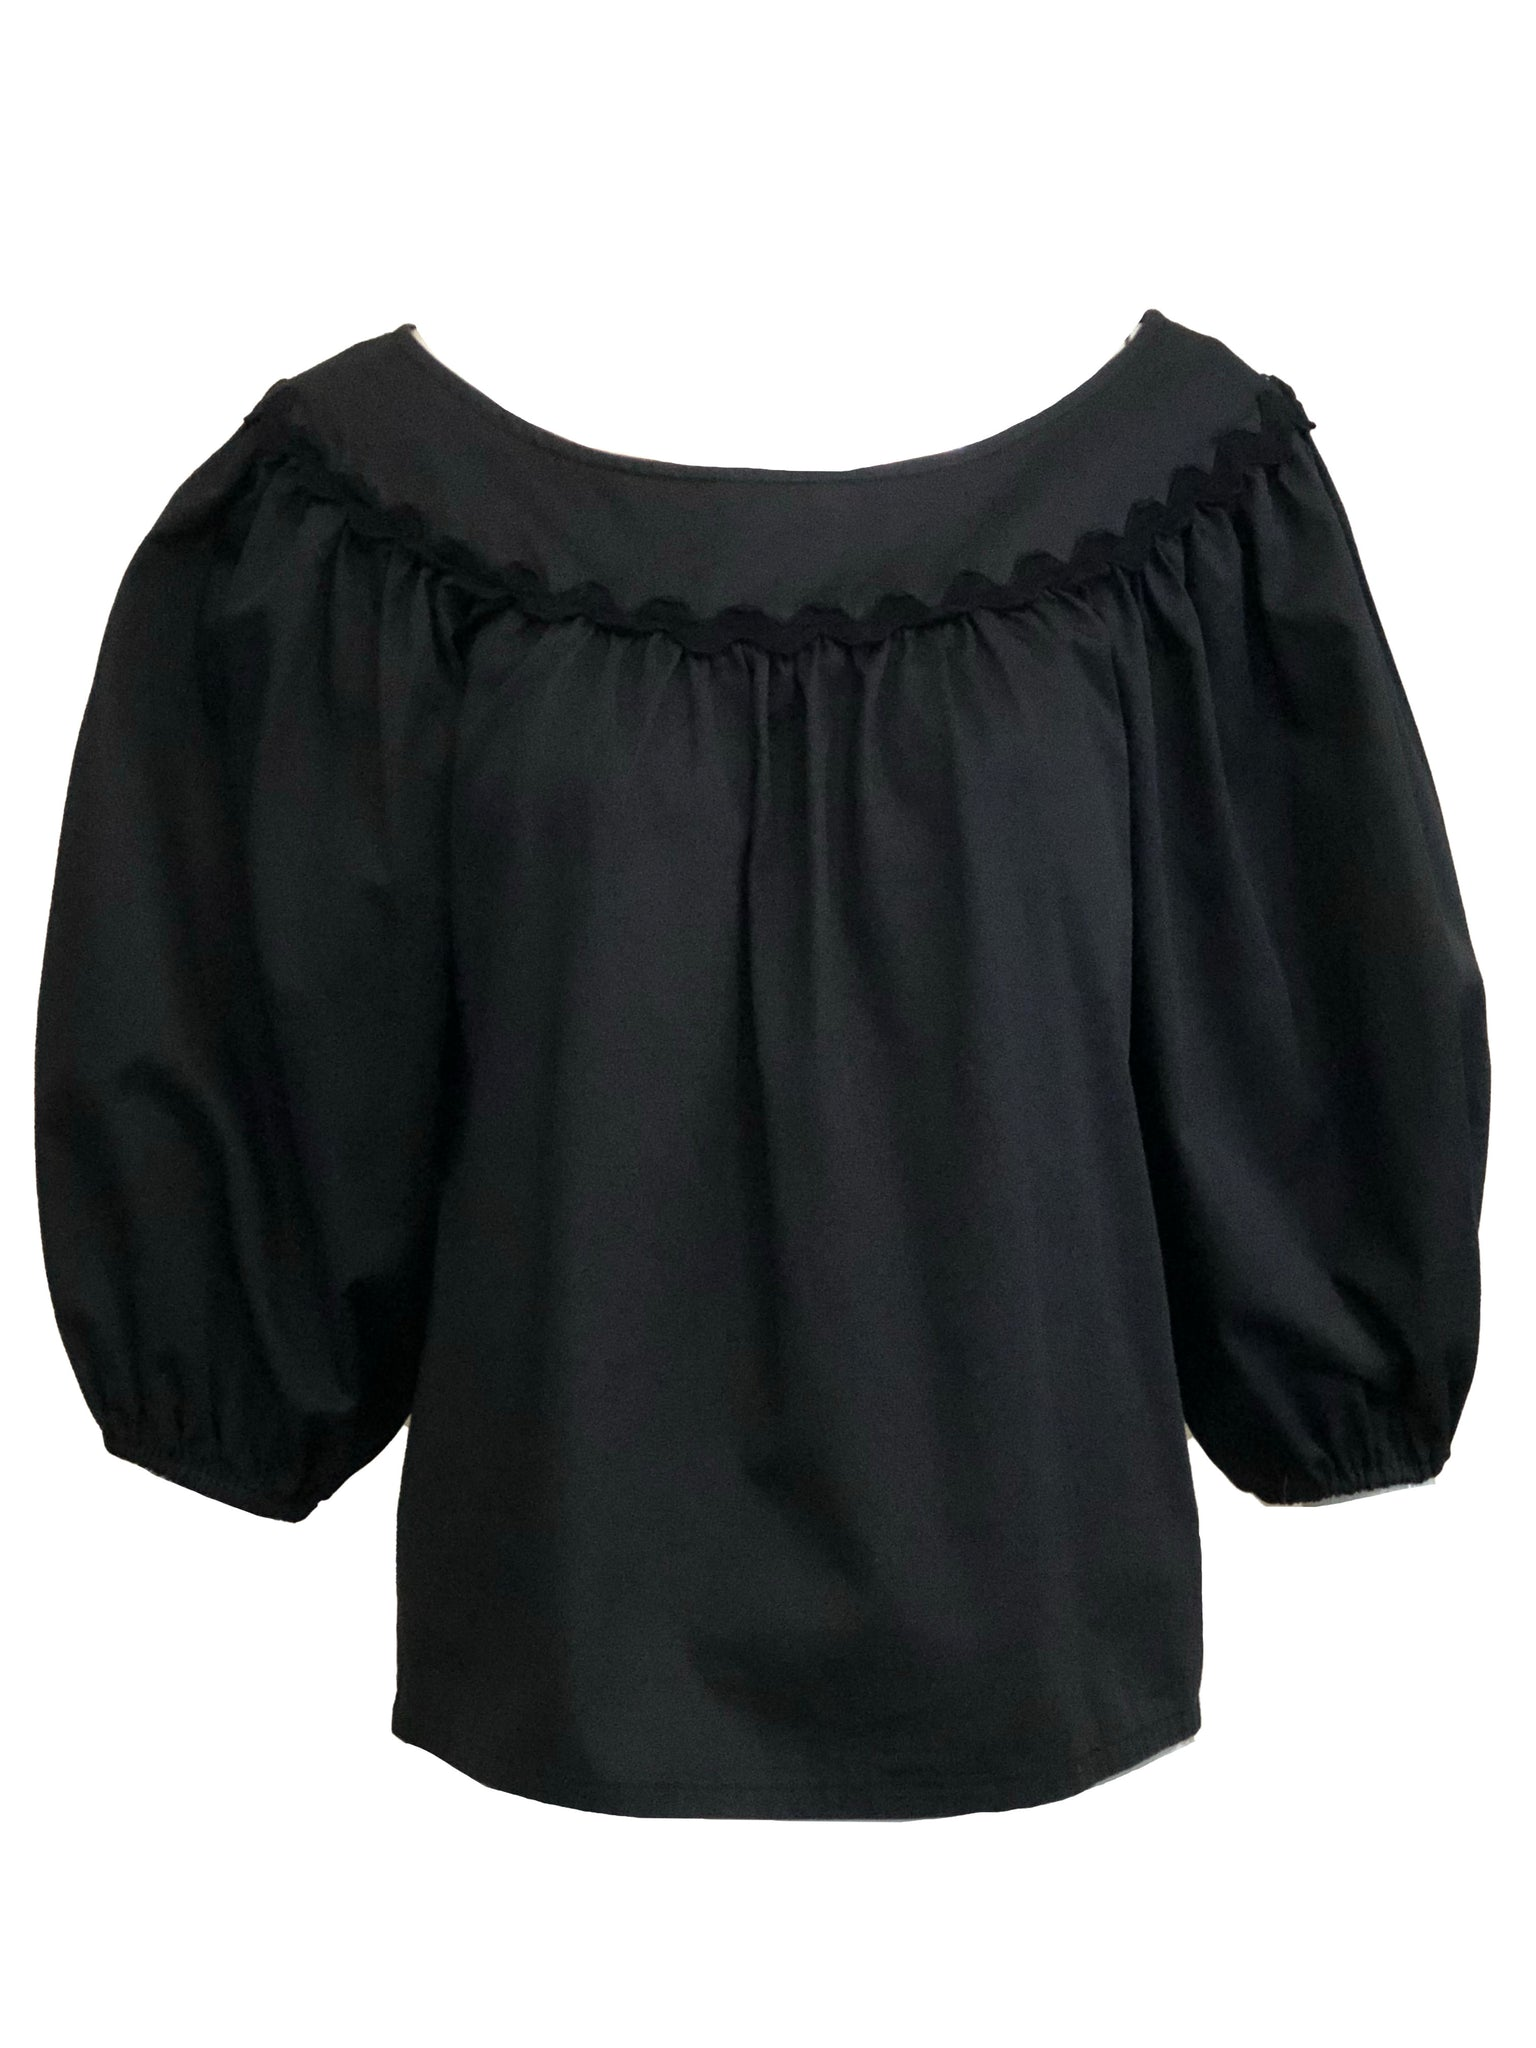 YSL 1970s Peasant Ensemble in Black and White BLOUSE 4 of 6